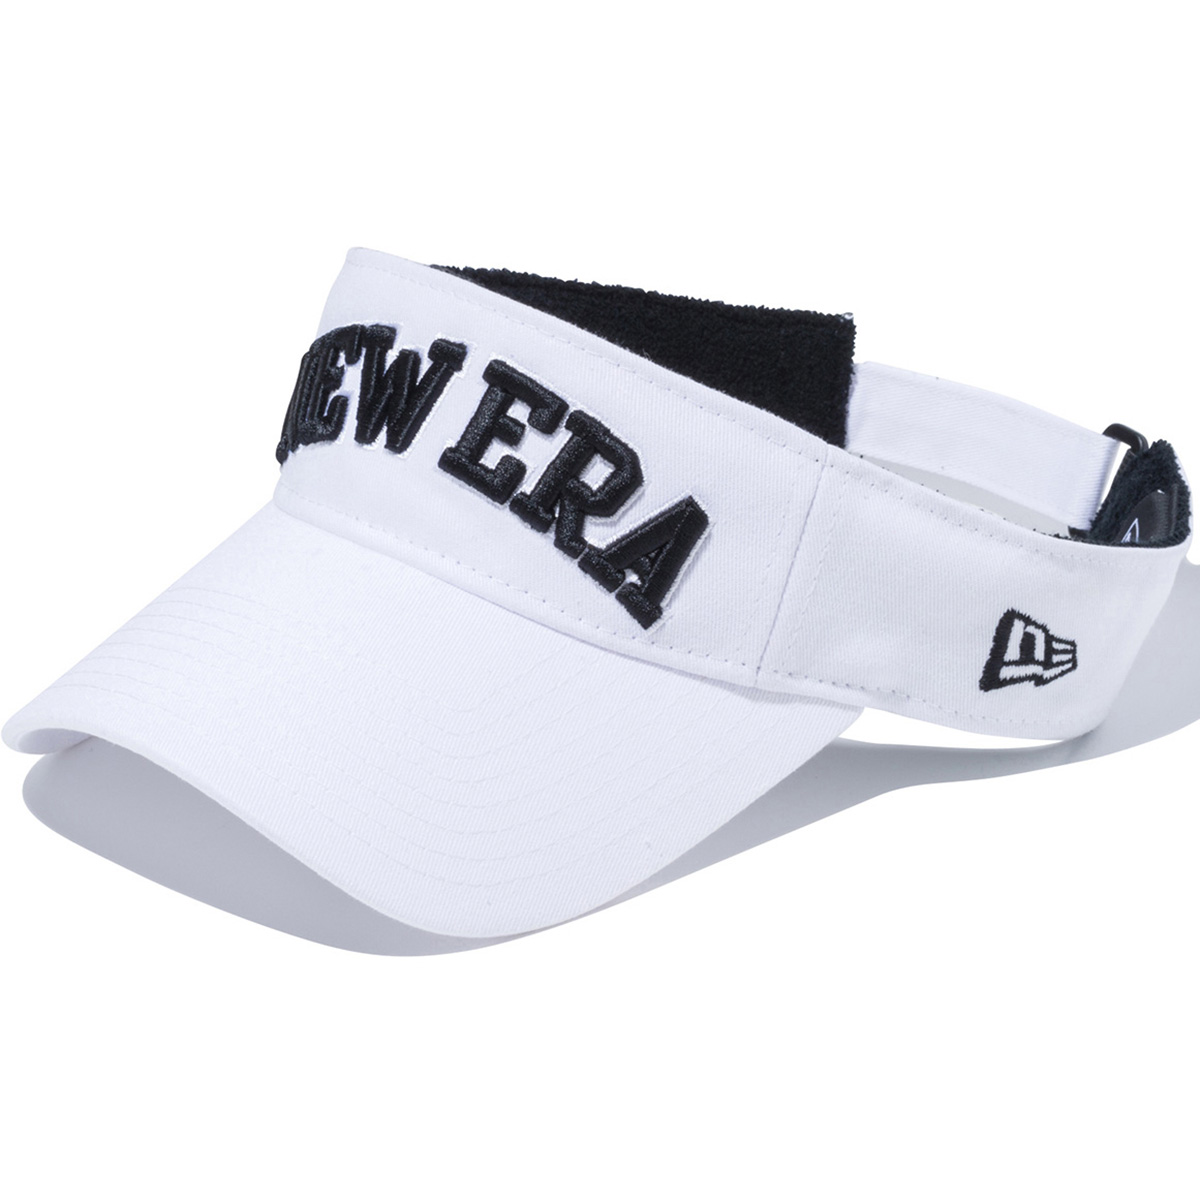 GOLF NEW ERA ARCH サンバイザー